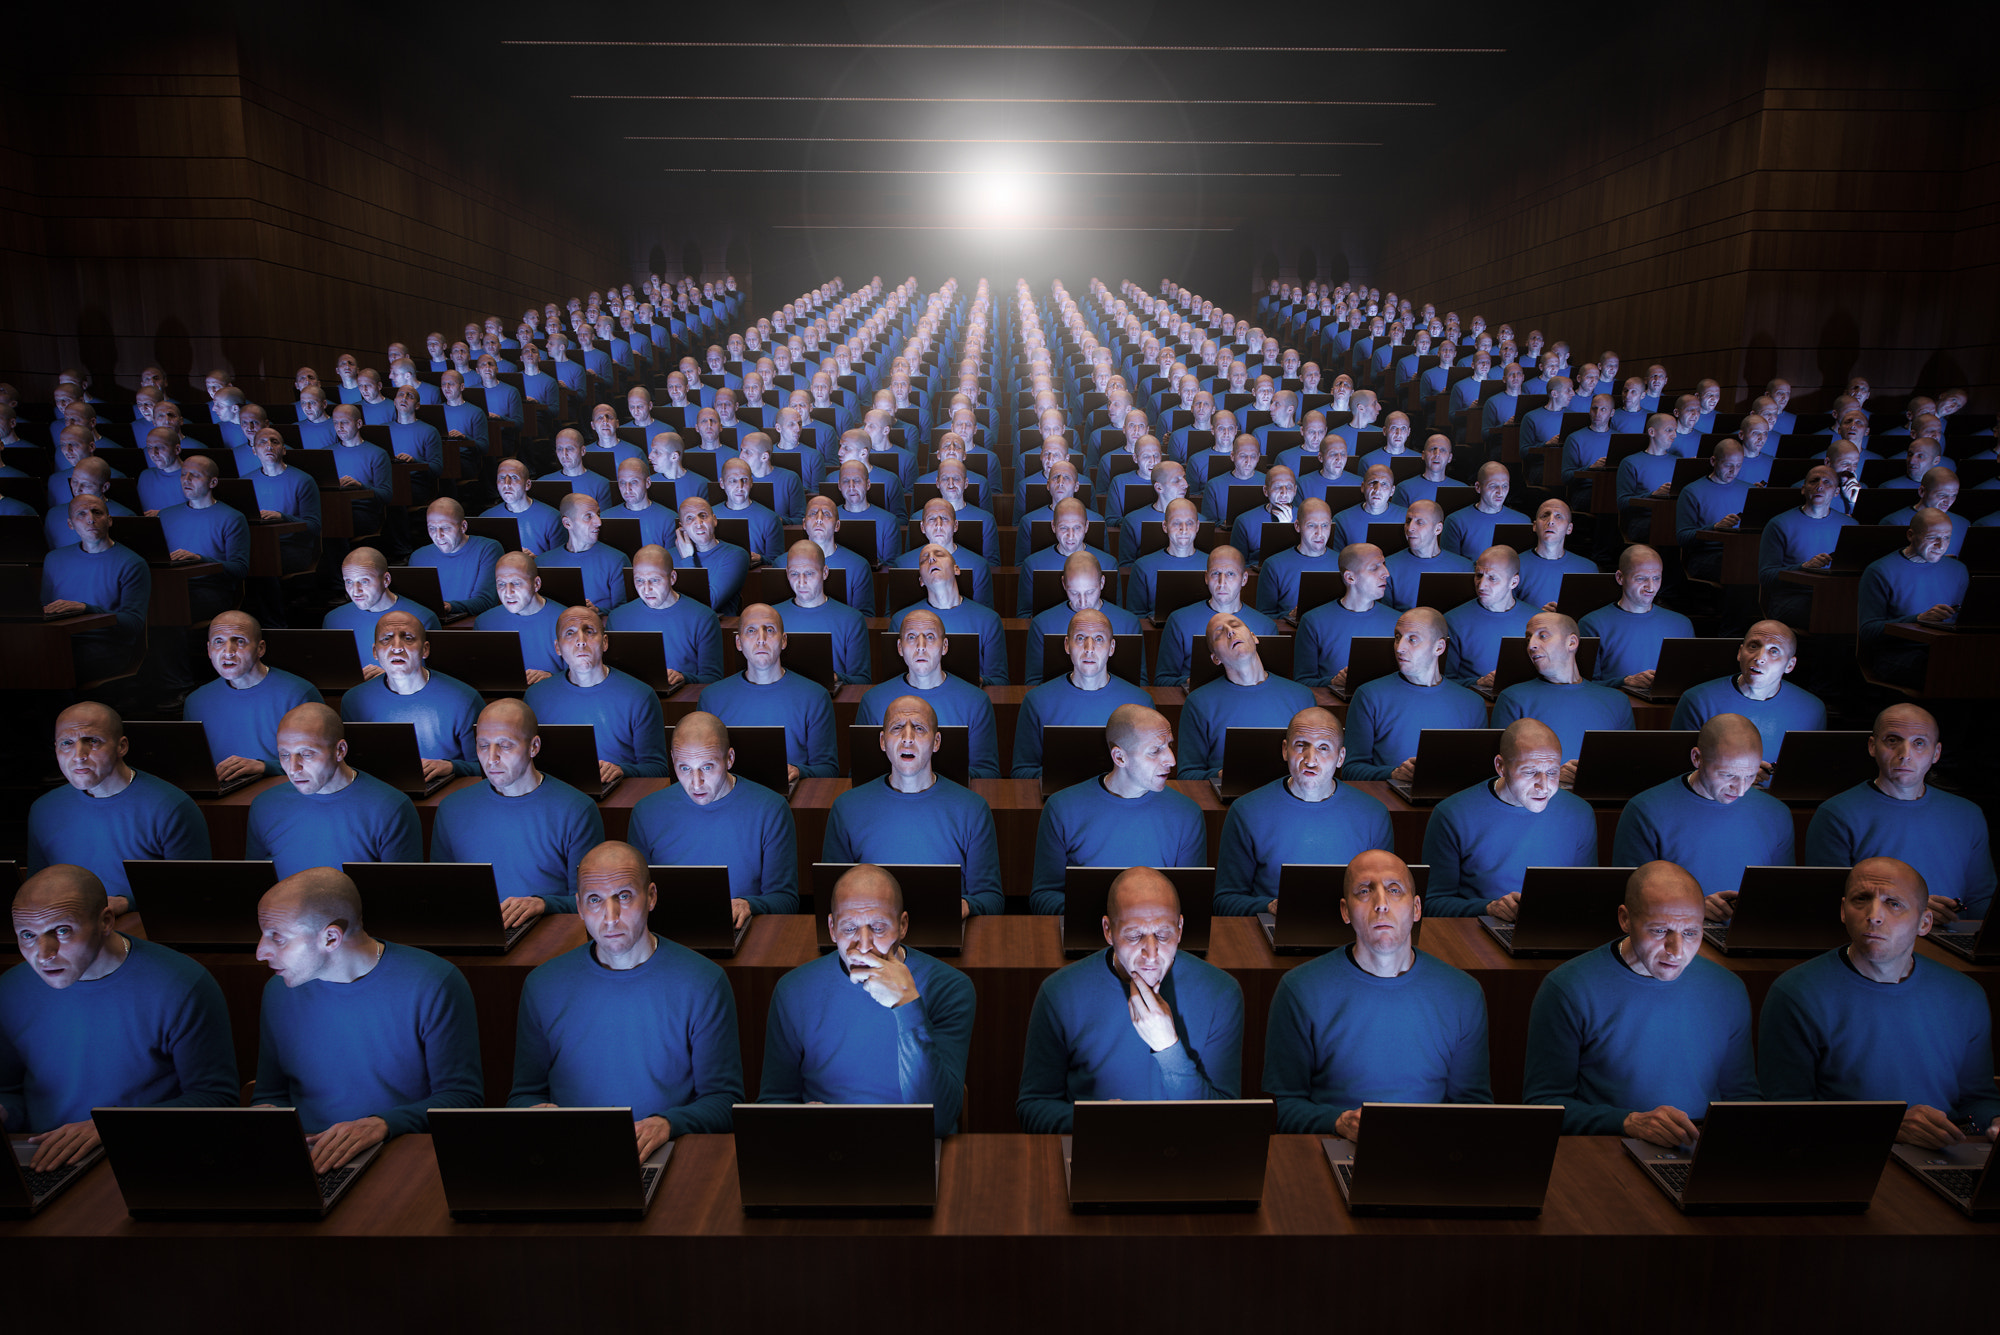 Photograph Silly Clone Academy - Auditorium by John Wilhelm is a photoholic on 500px